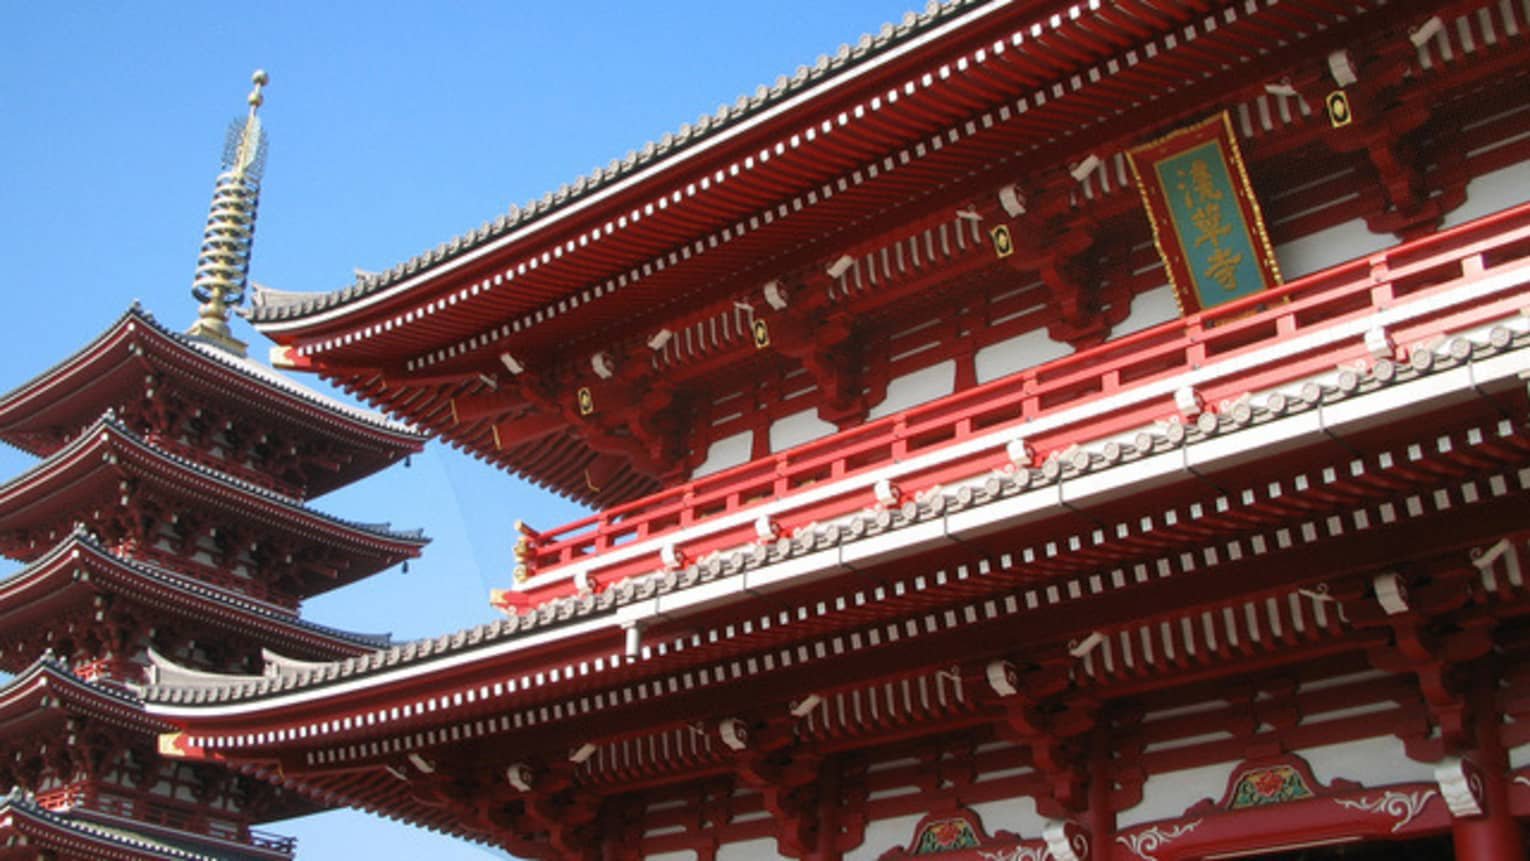 Close-up of detailed ridges of Senso-Ji Temple red pagoda